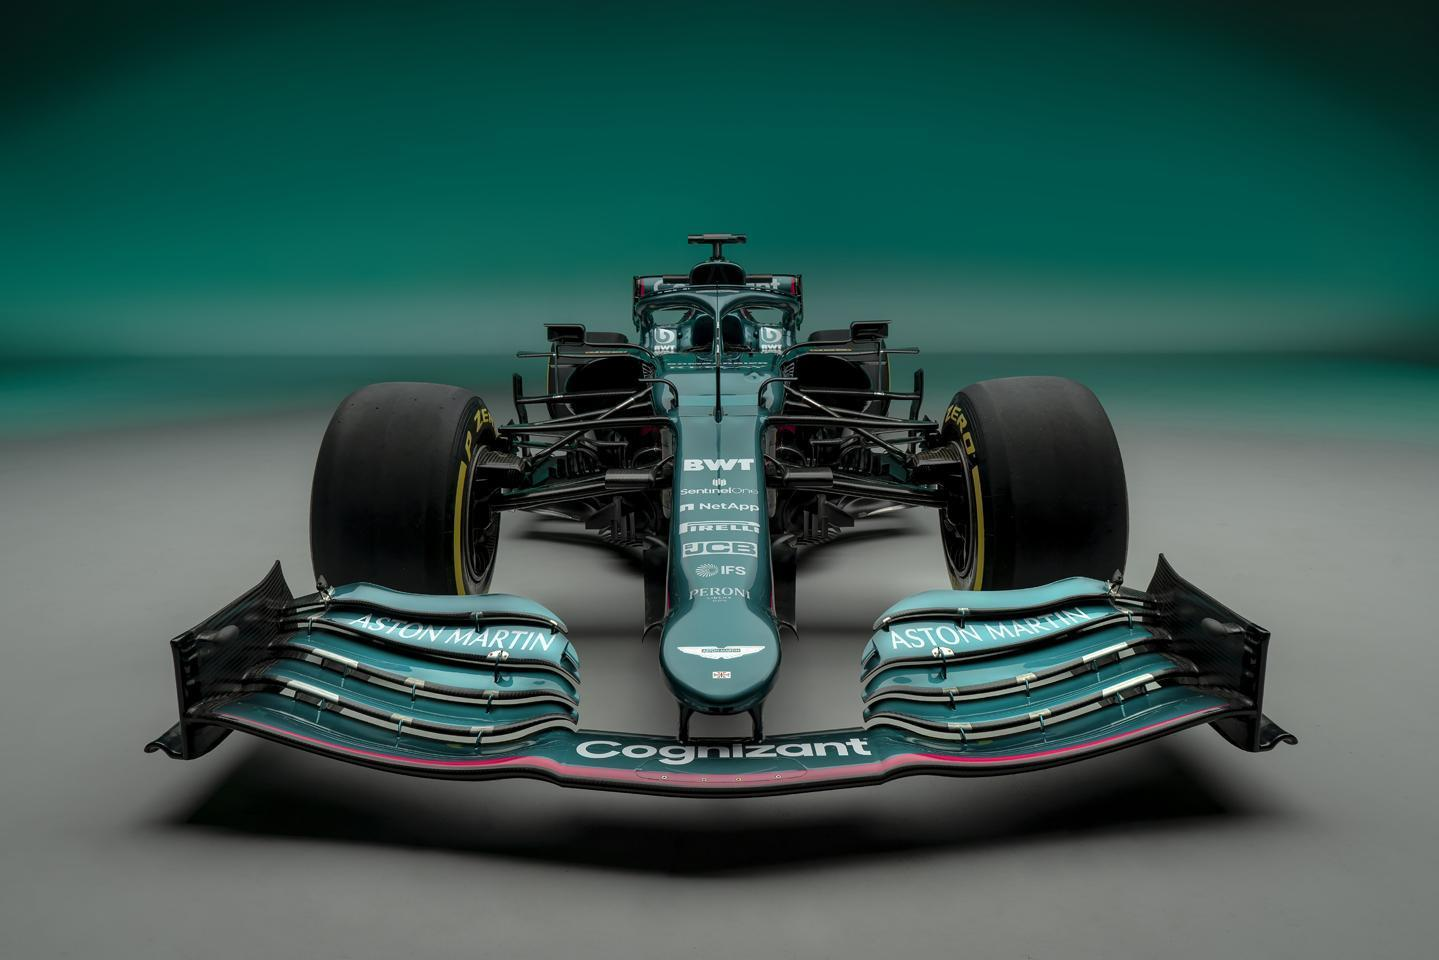 Re 61 Years Later An Aston Martin F1 Car Page 1 General Gassing Pistonheads Uk [ 960 x 1439 Pixel ]